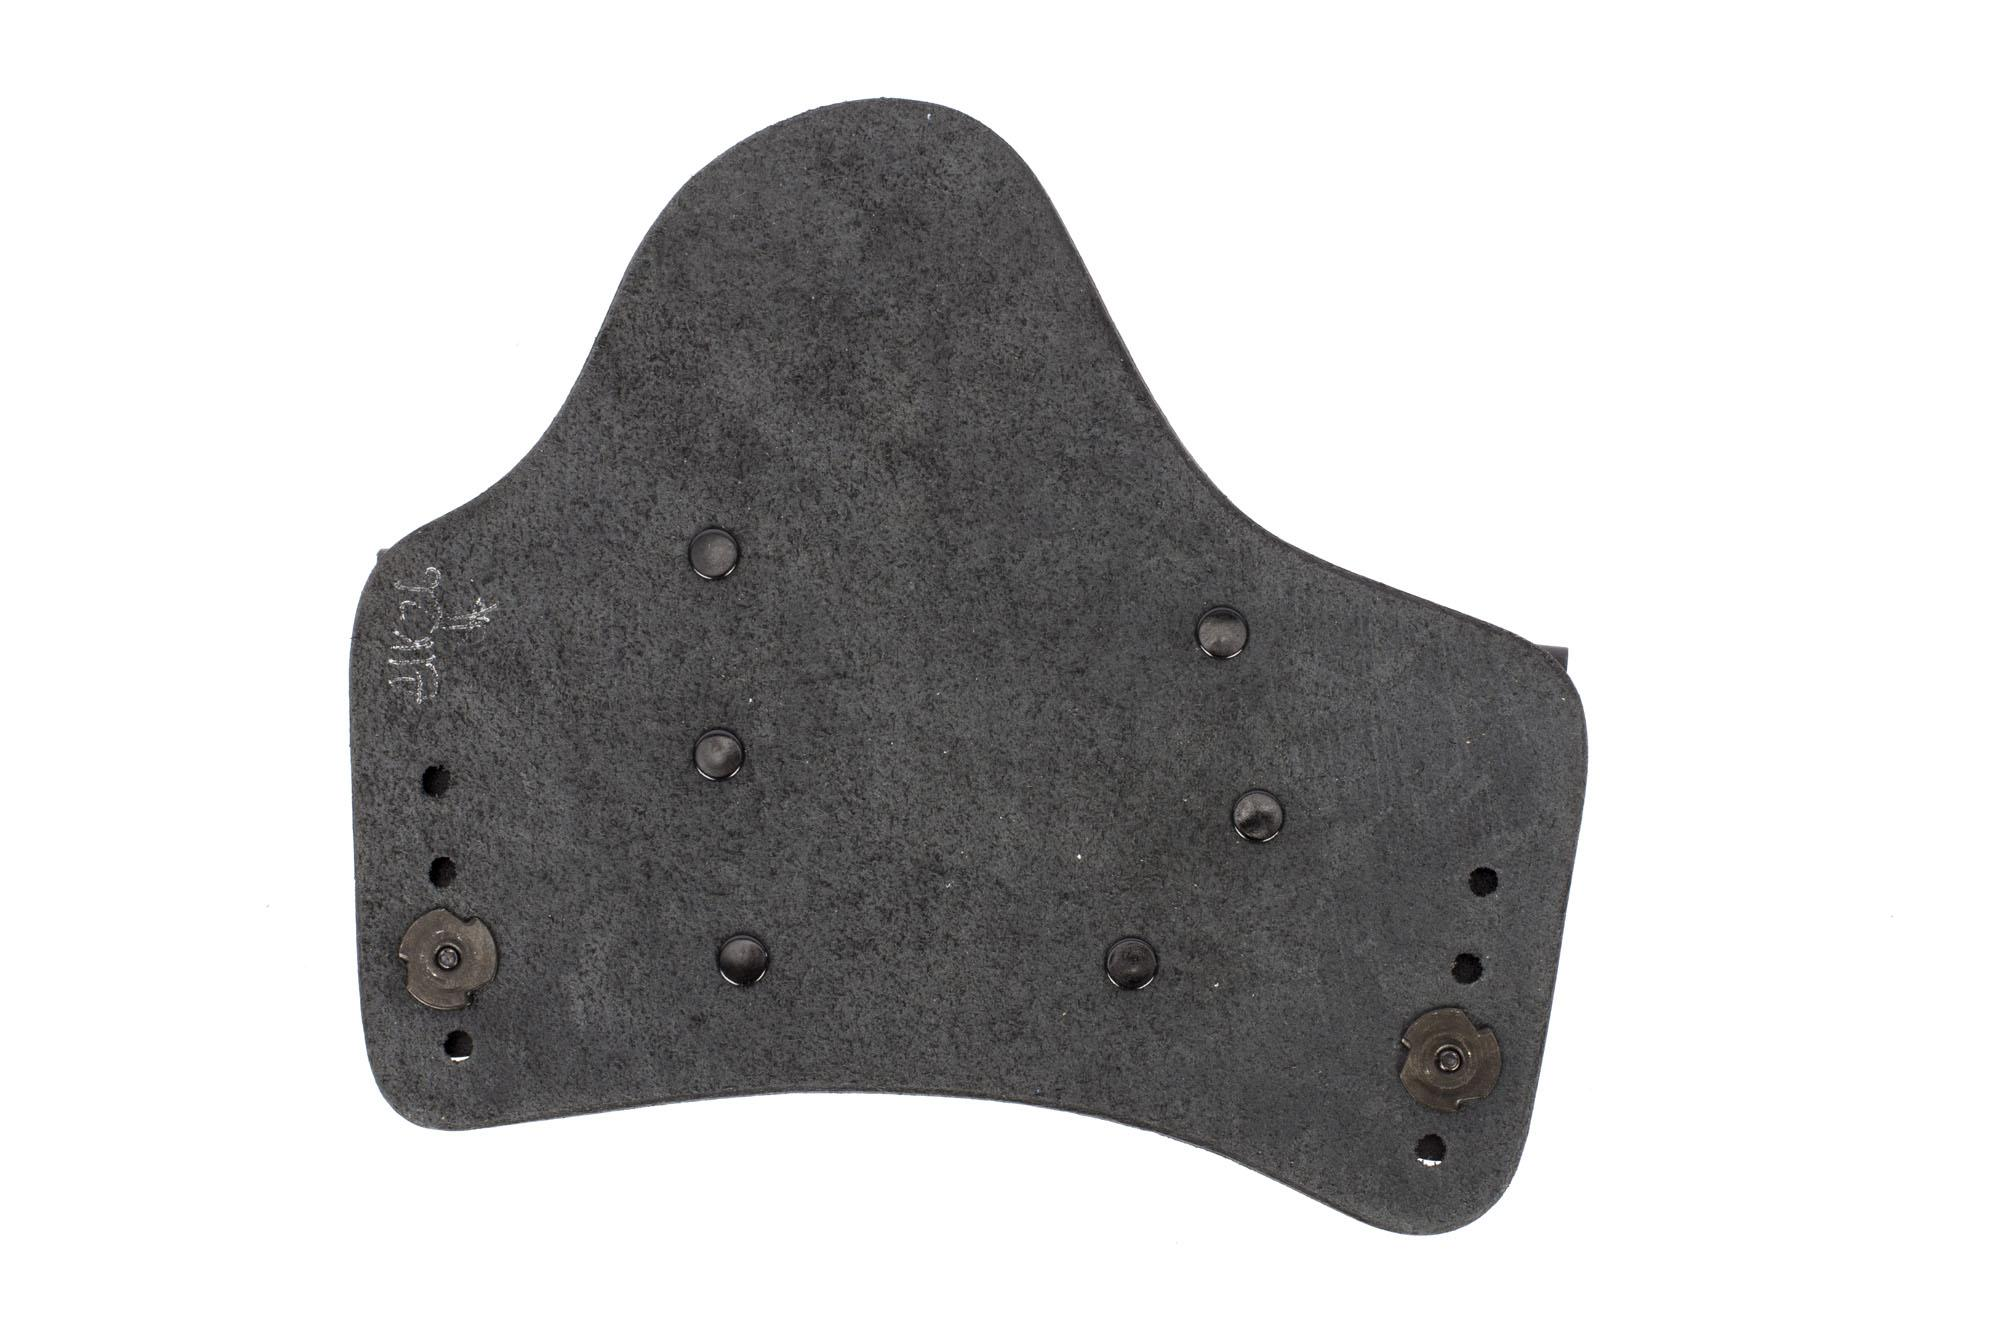 CrossBreed Holsters SuperTuck IWB Holster - GLOCK 26/27/28/33 Compatible